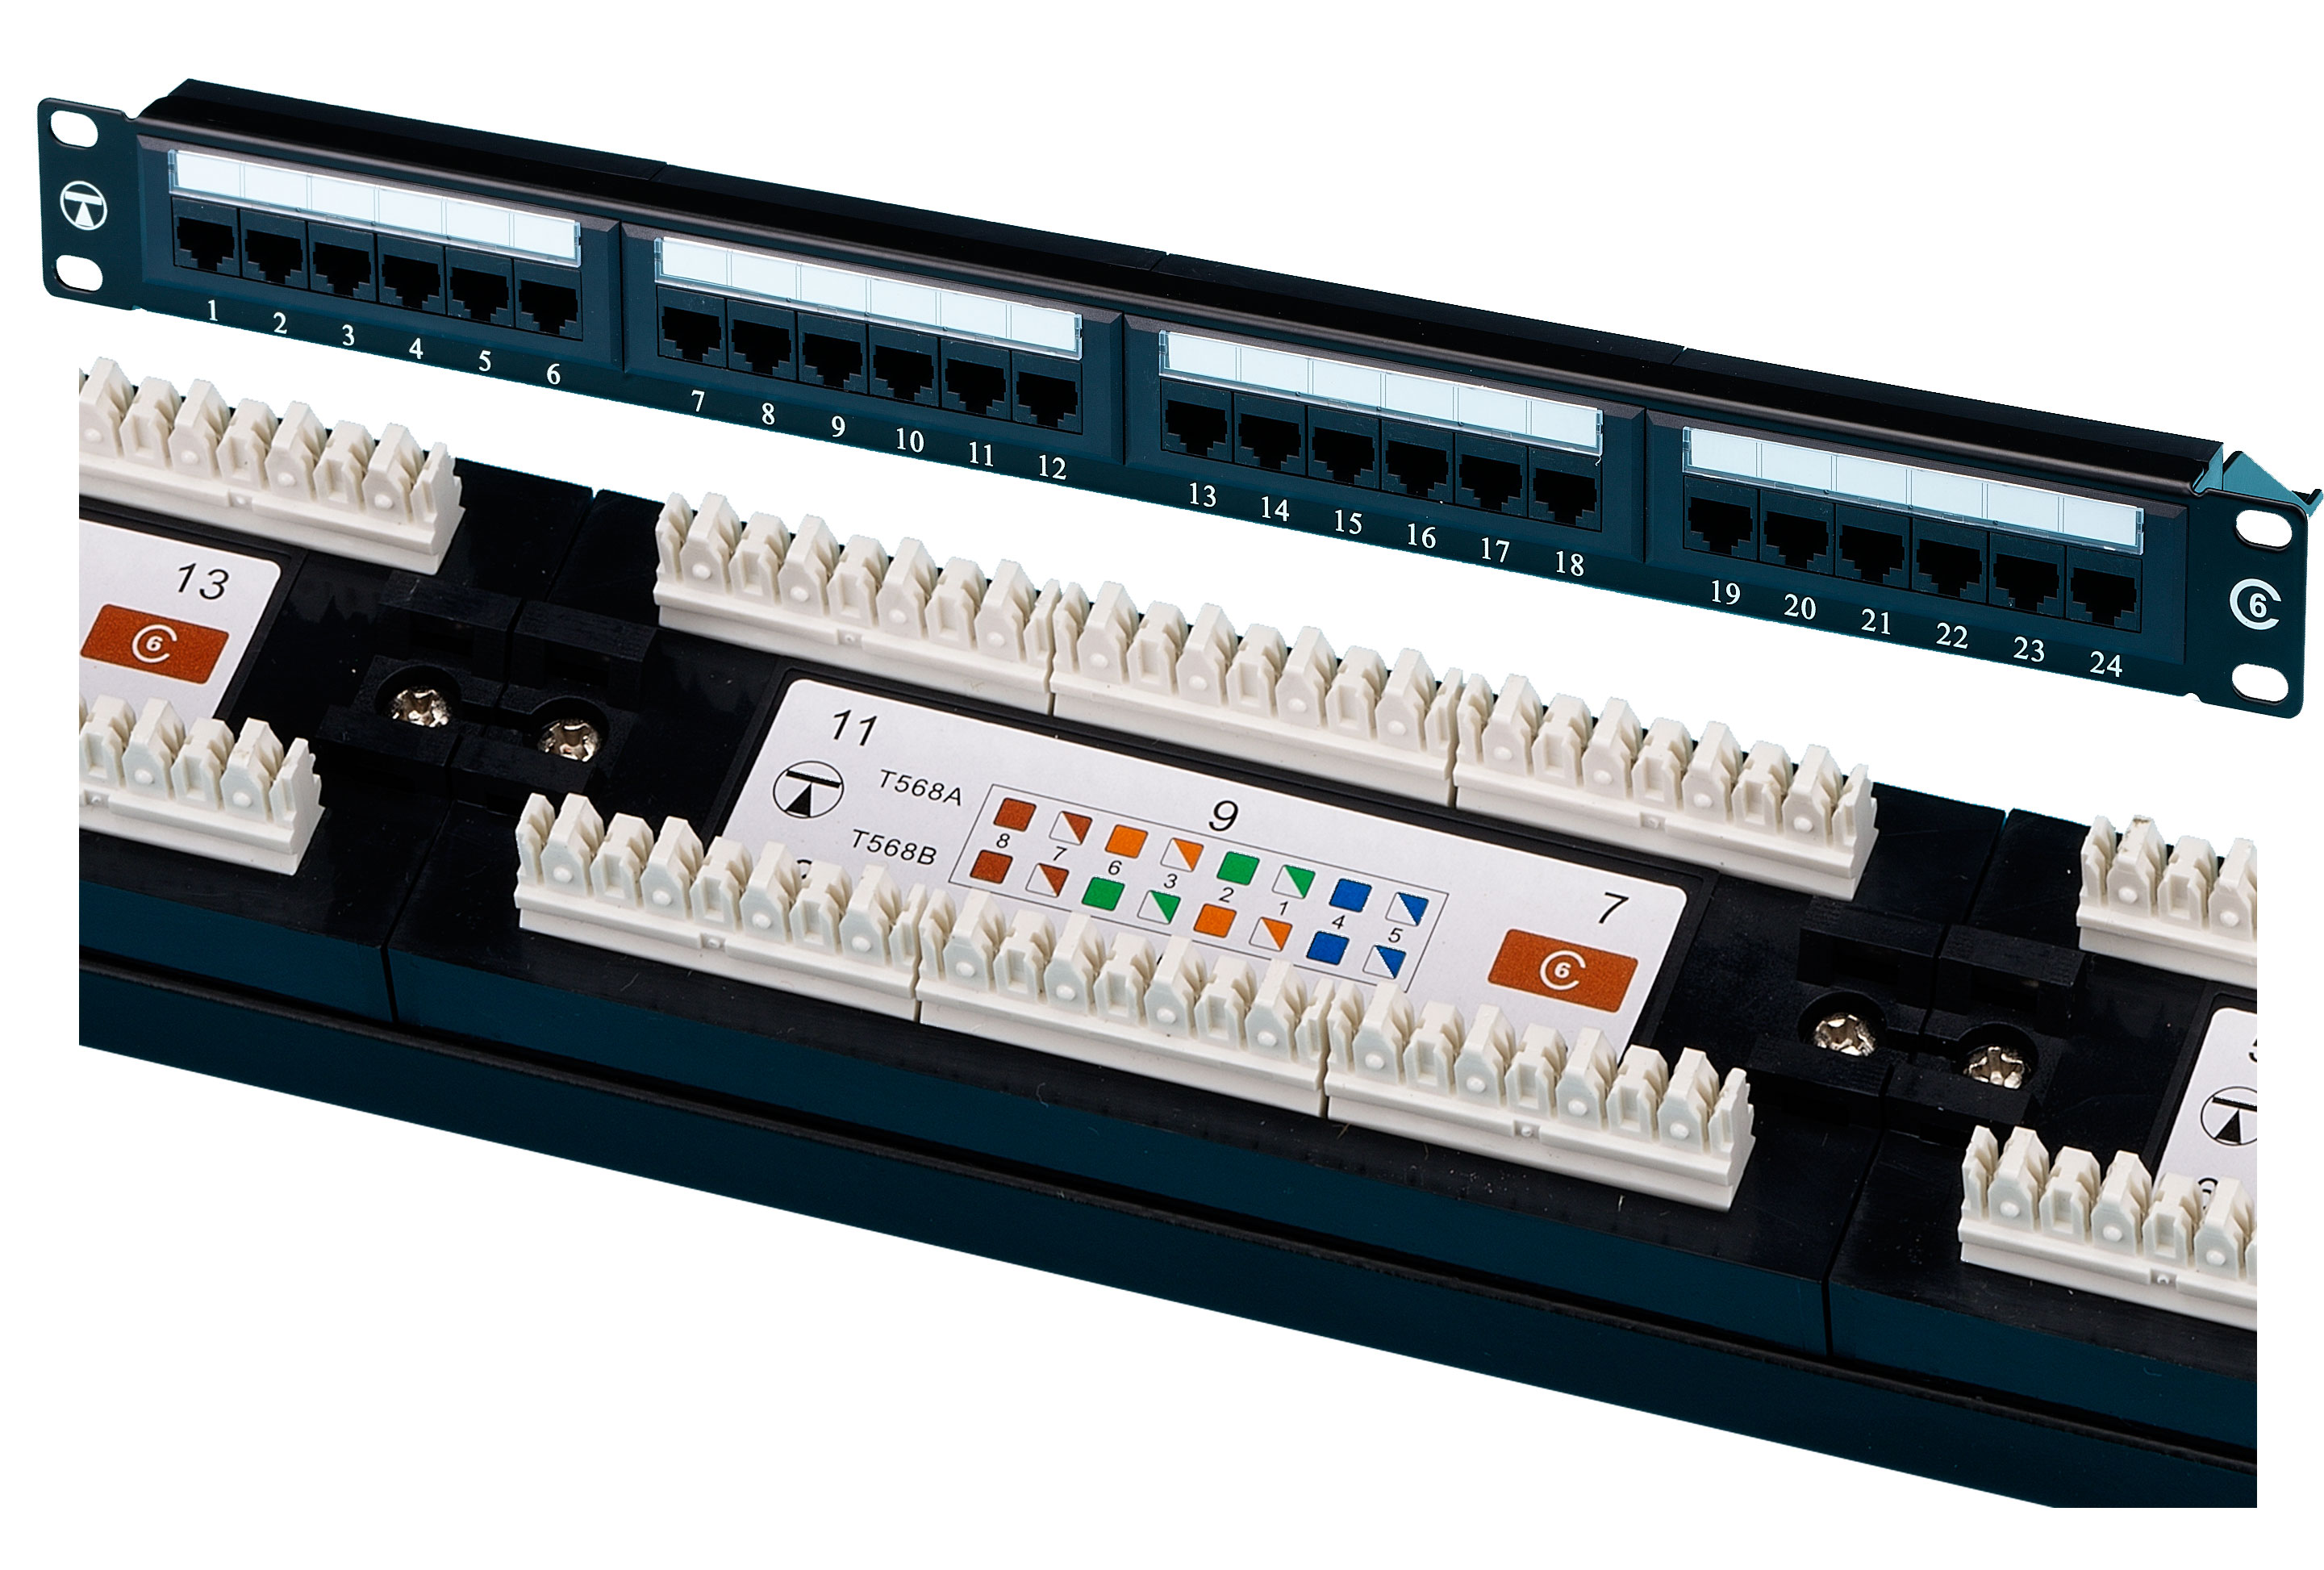 TUK SF24C Cat6 24 Port Vert Patch Panel